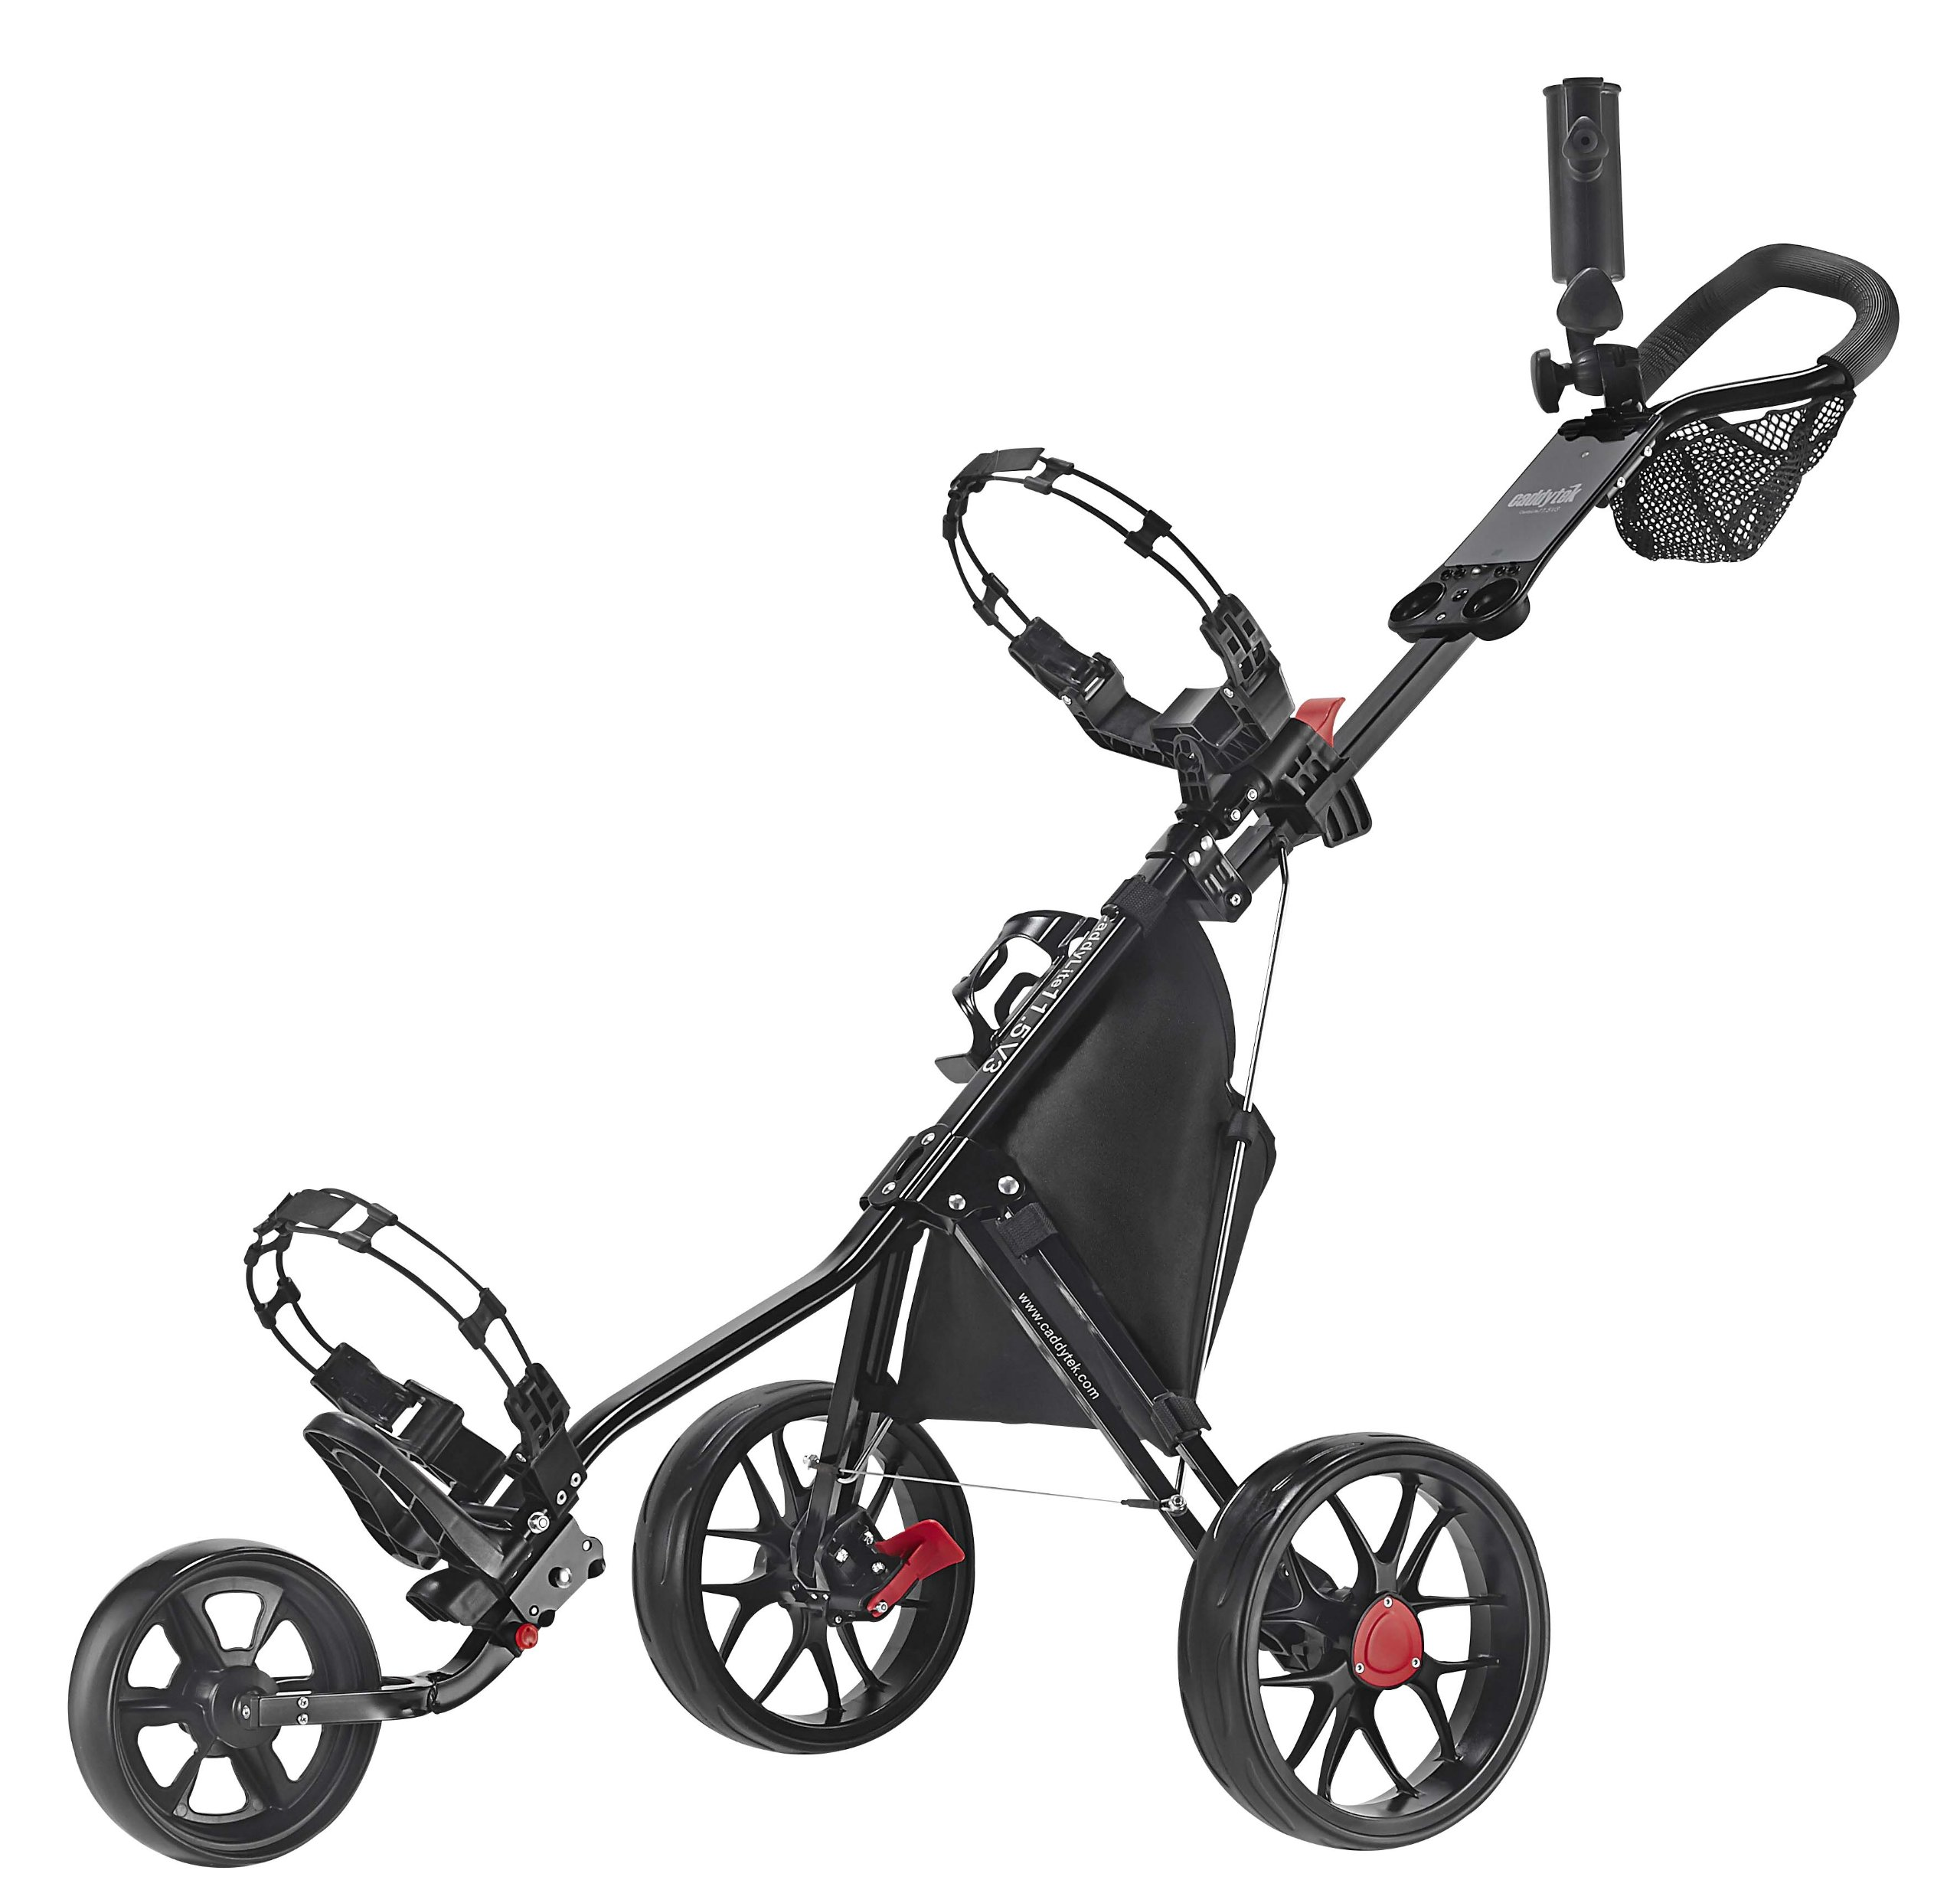 CaddyTek Deluxe 3 Wheel Golf Push Cart Version 3, CaddyLite 11.5 V3-Black by CaddyTek